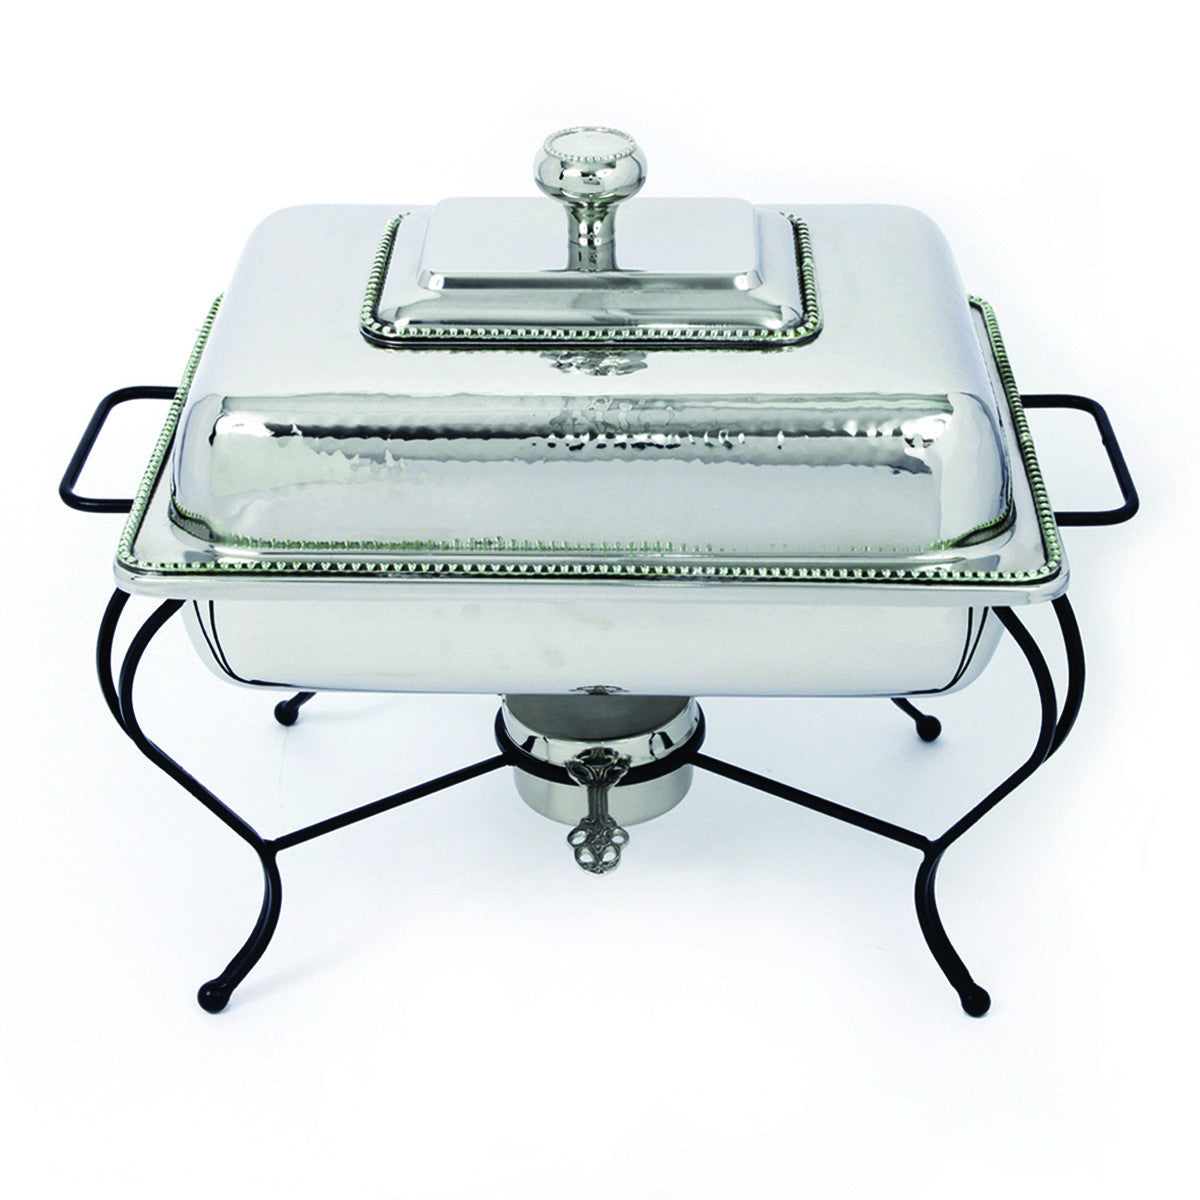 Oven To Table 6 QT Rectangle Stainless Steel